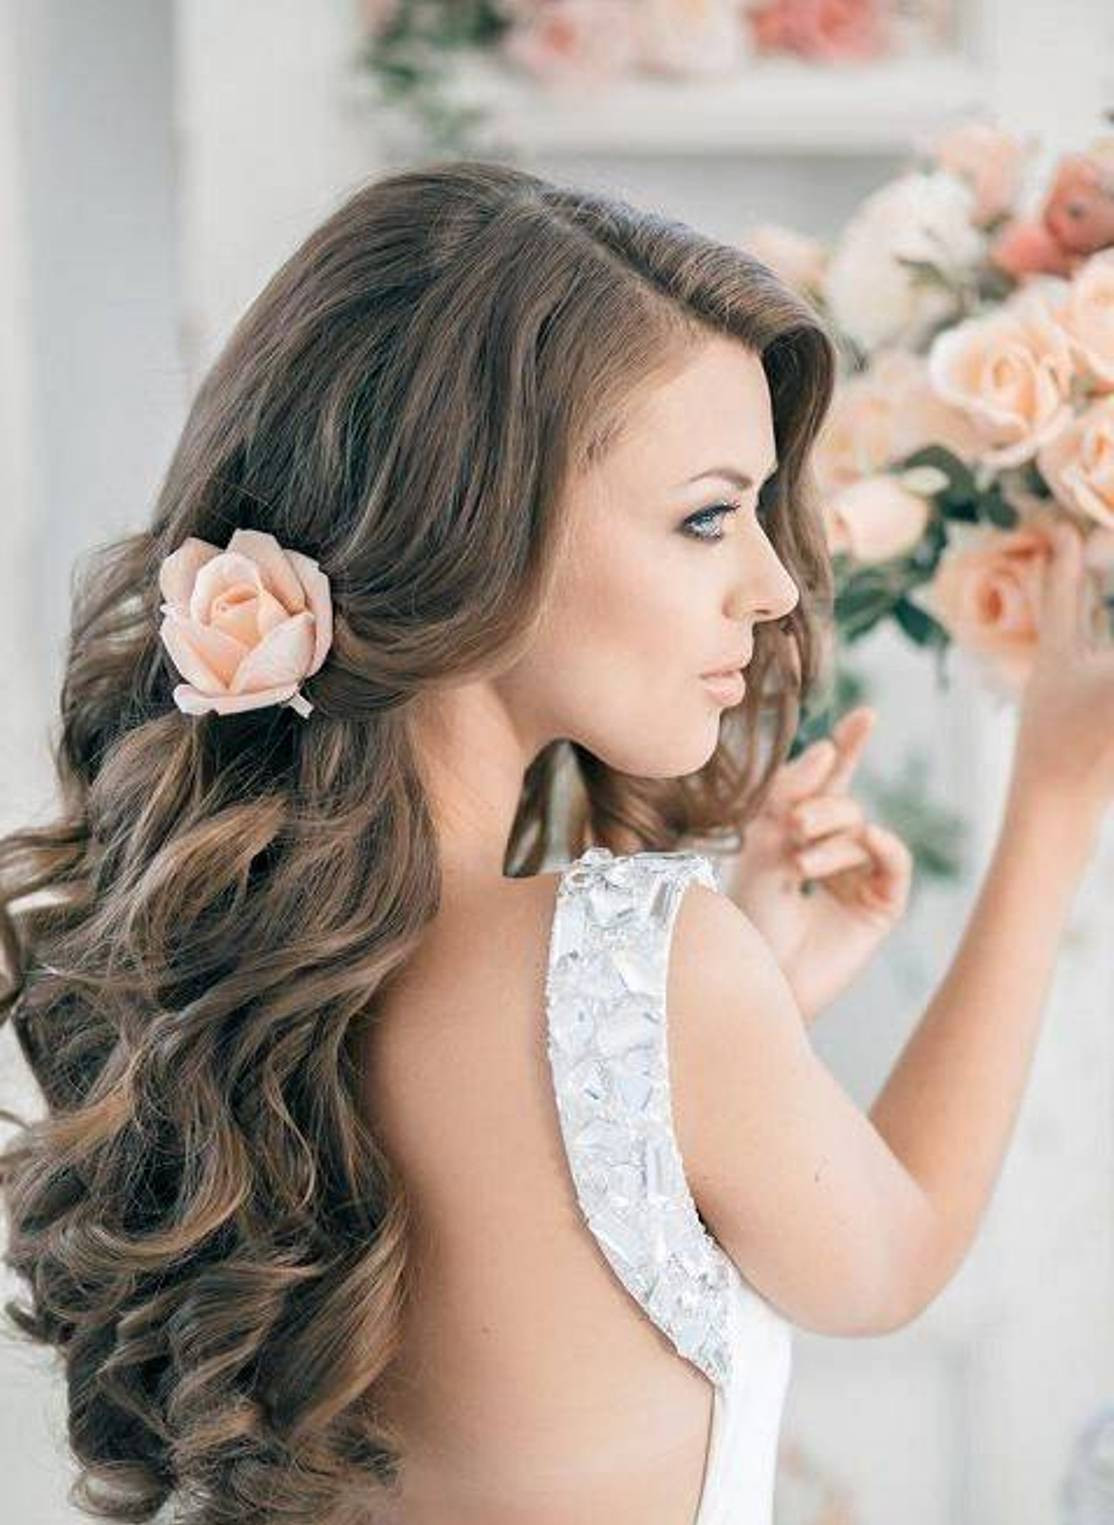 Best ideas about Wedding Hairstyles Down Curly . Save or Pin Bridal Hairstyles Sirmione Wedding Now.